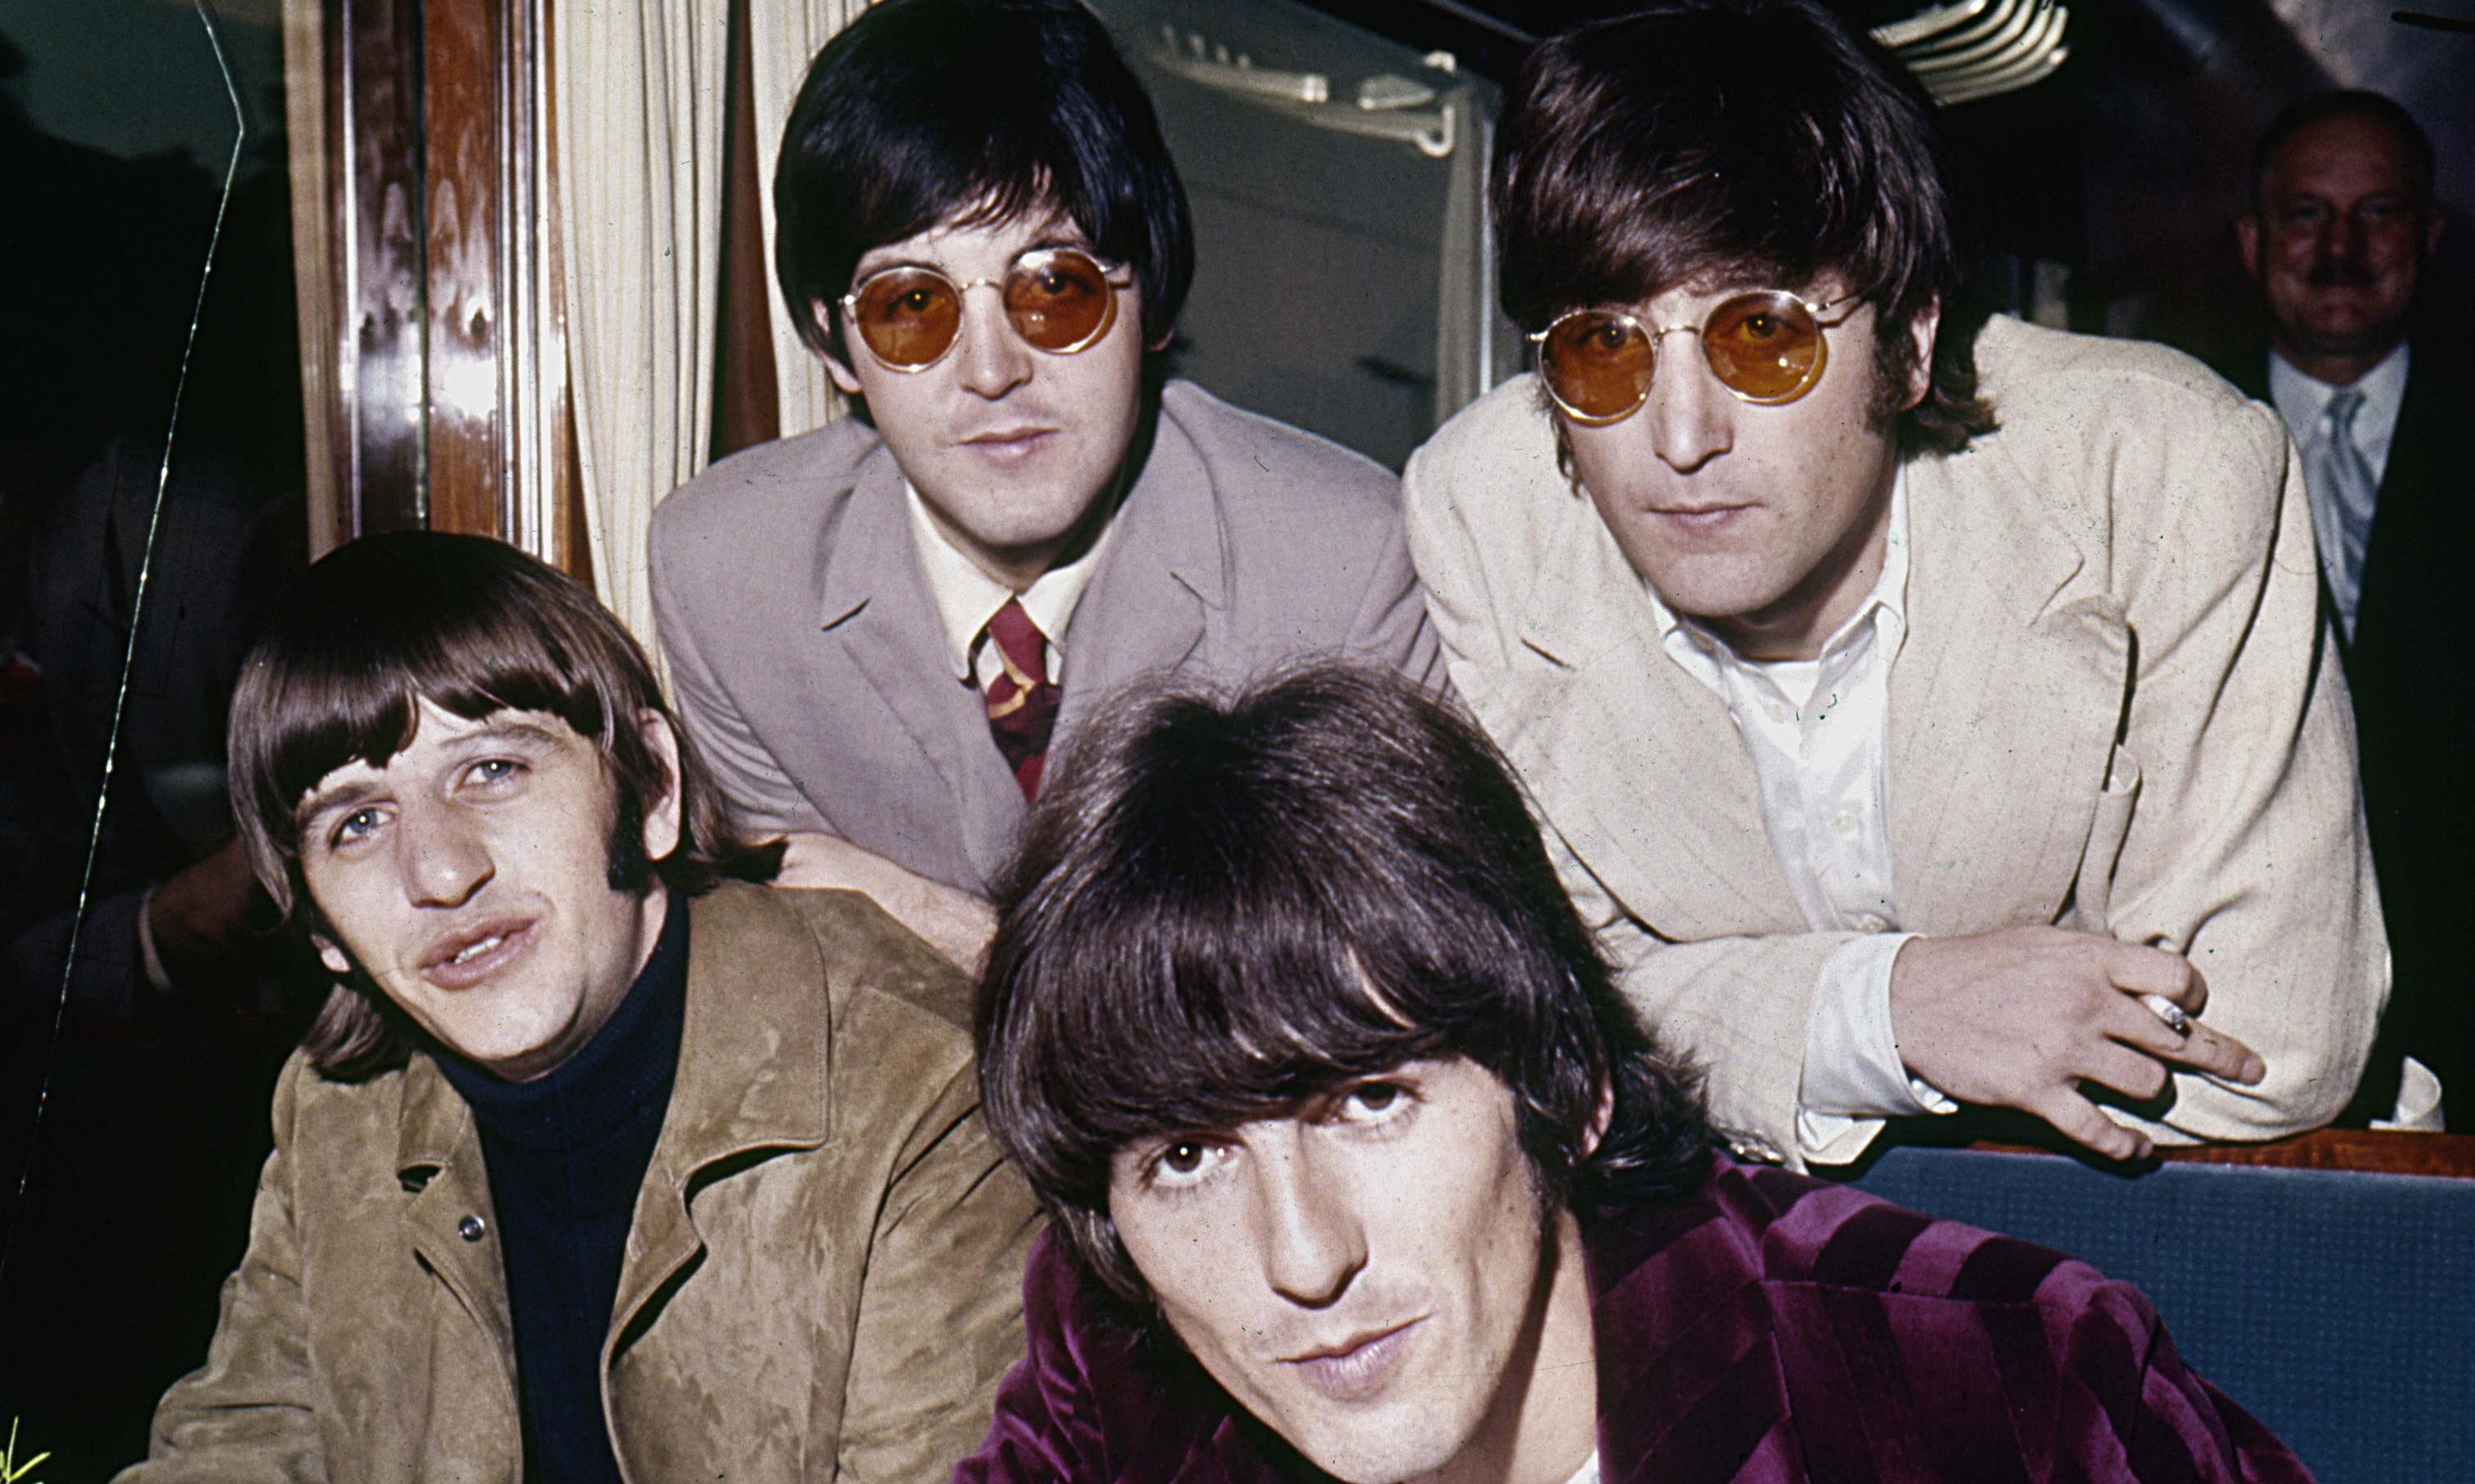 Lost Beatles footage to be shown for first time in more than 50 years